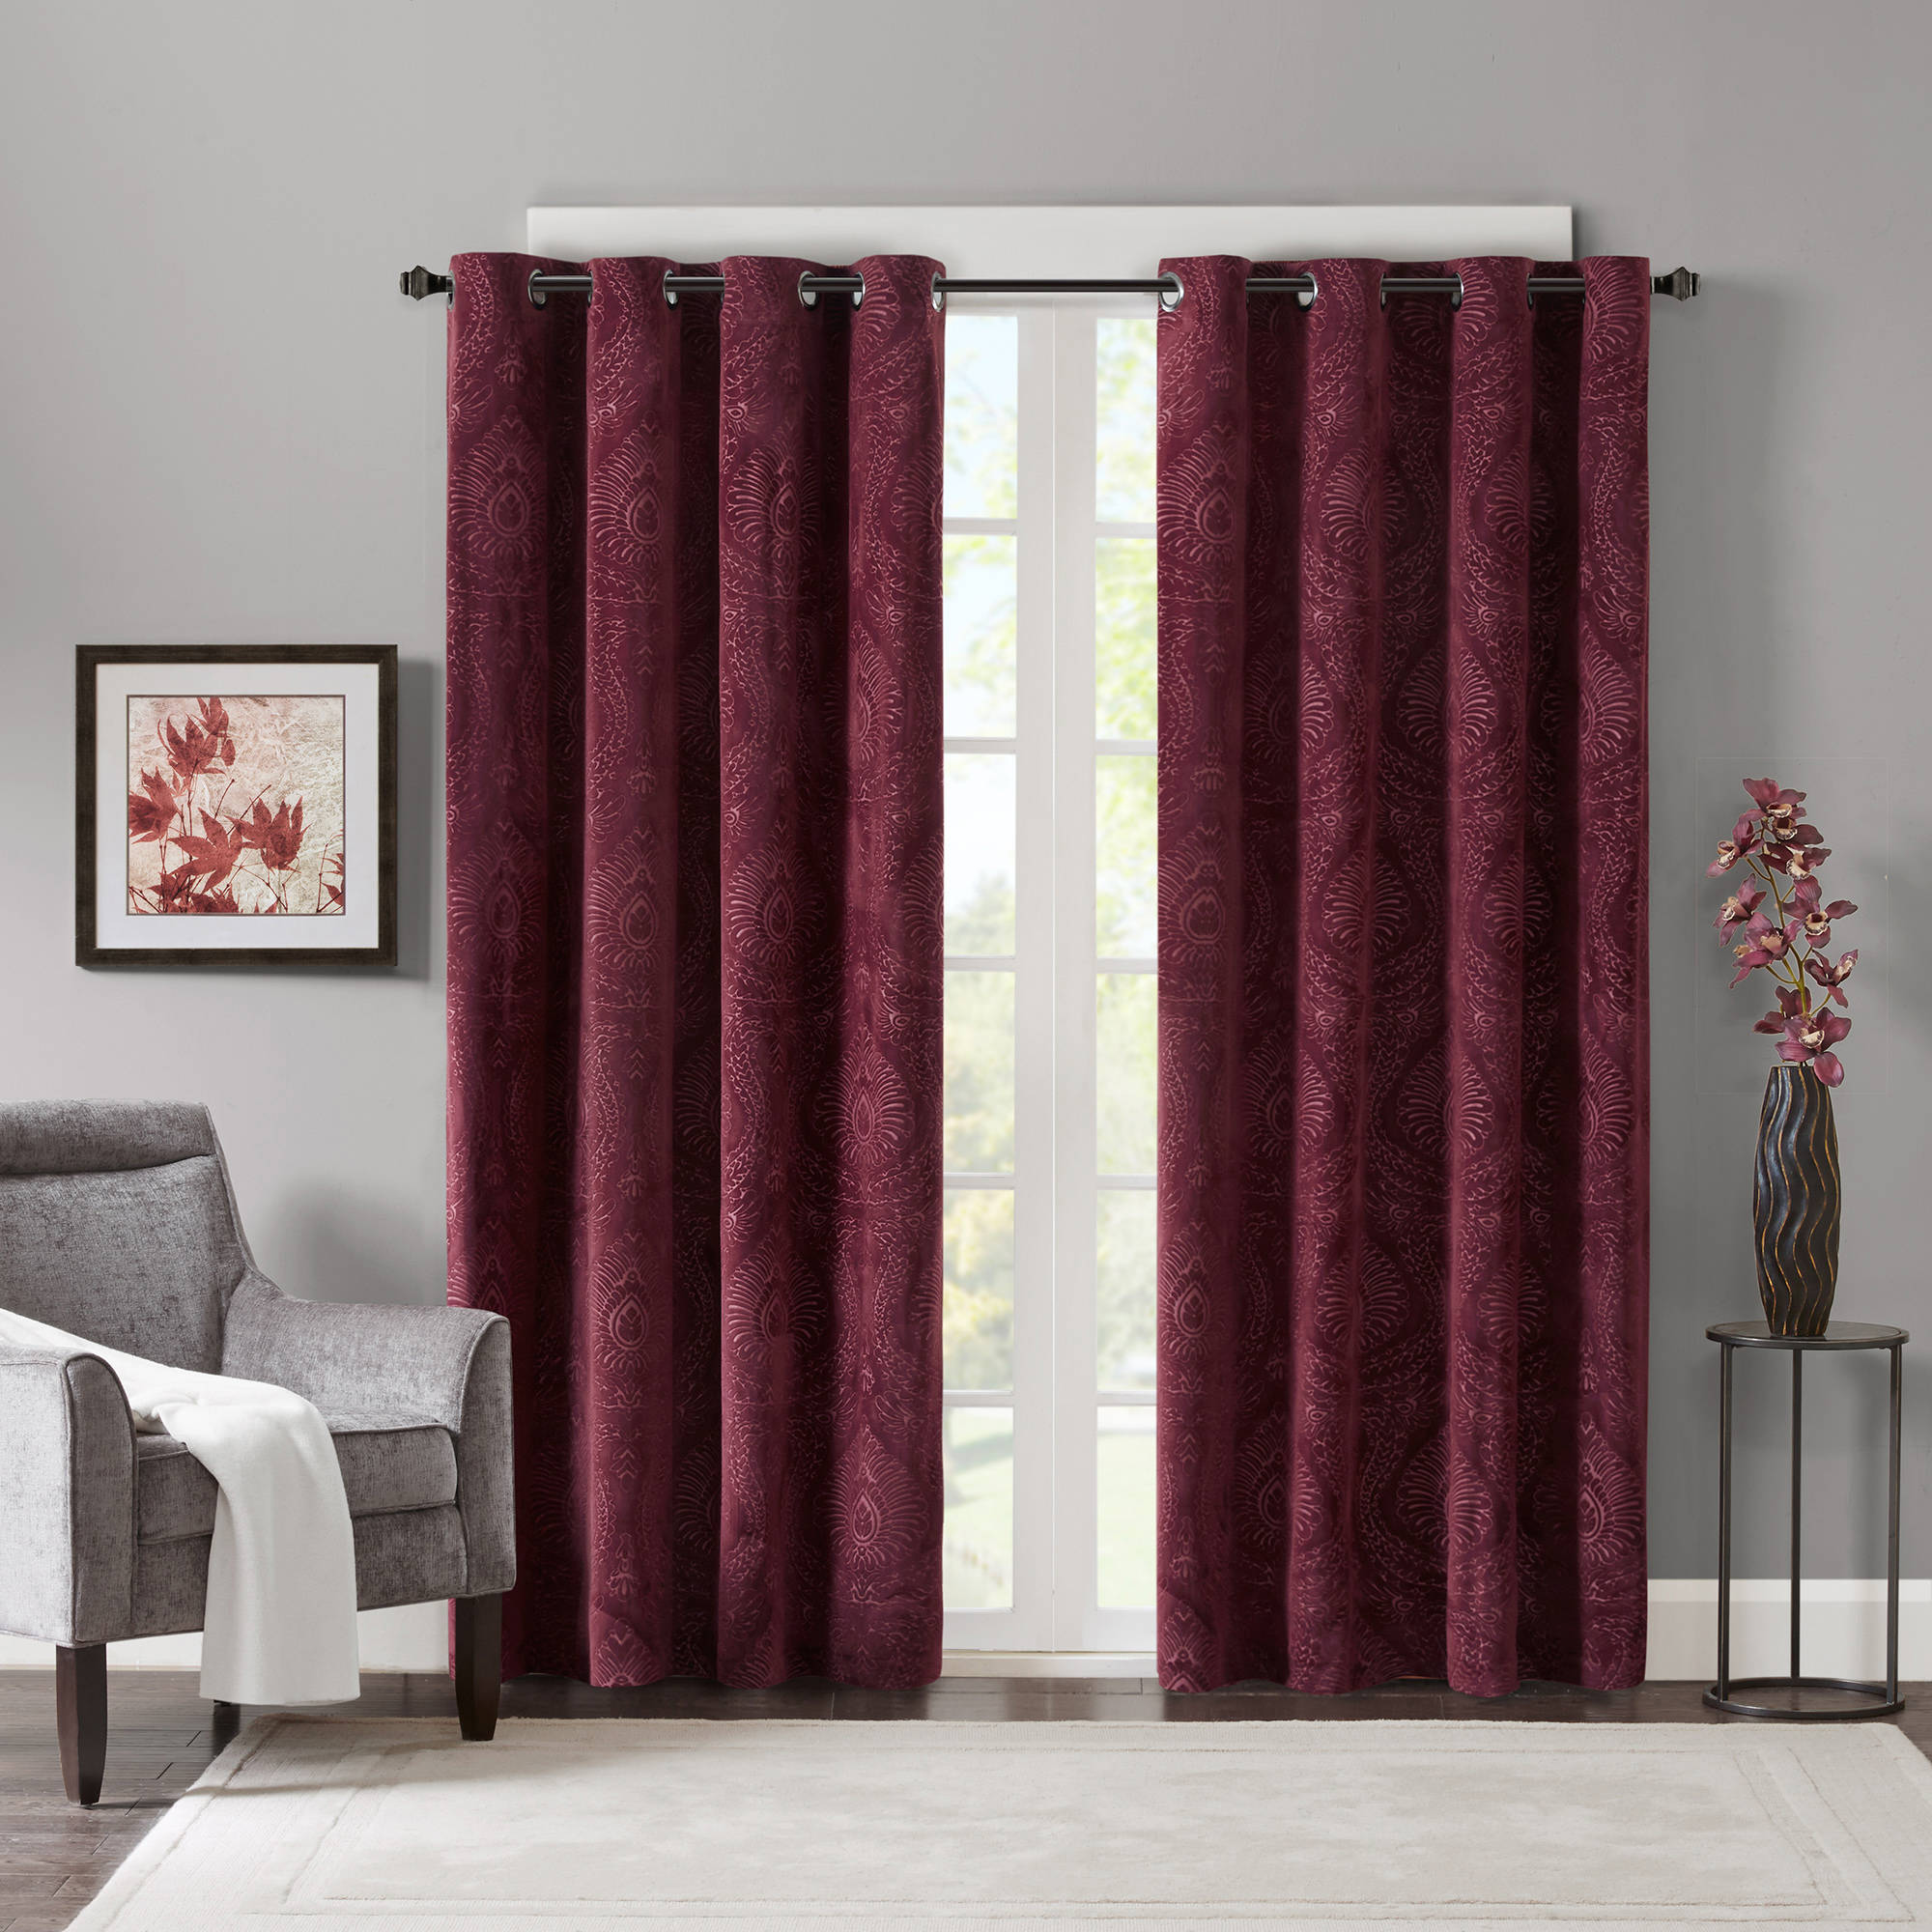 Home Essence Bergio Embossed Damask Velvet Panel, Polyester